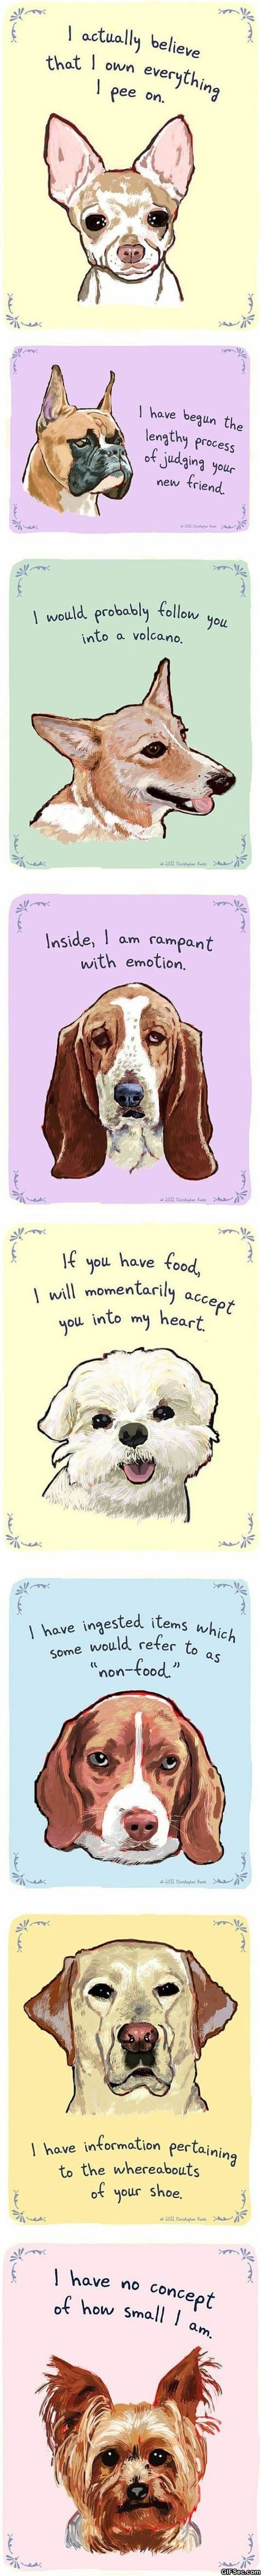 funny-pictures-dog-confessions